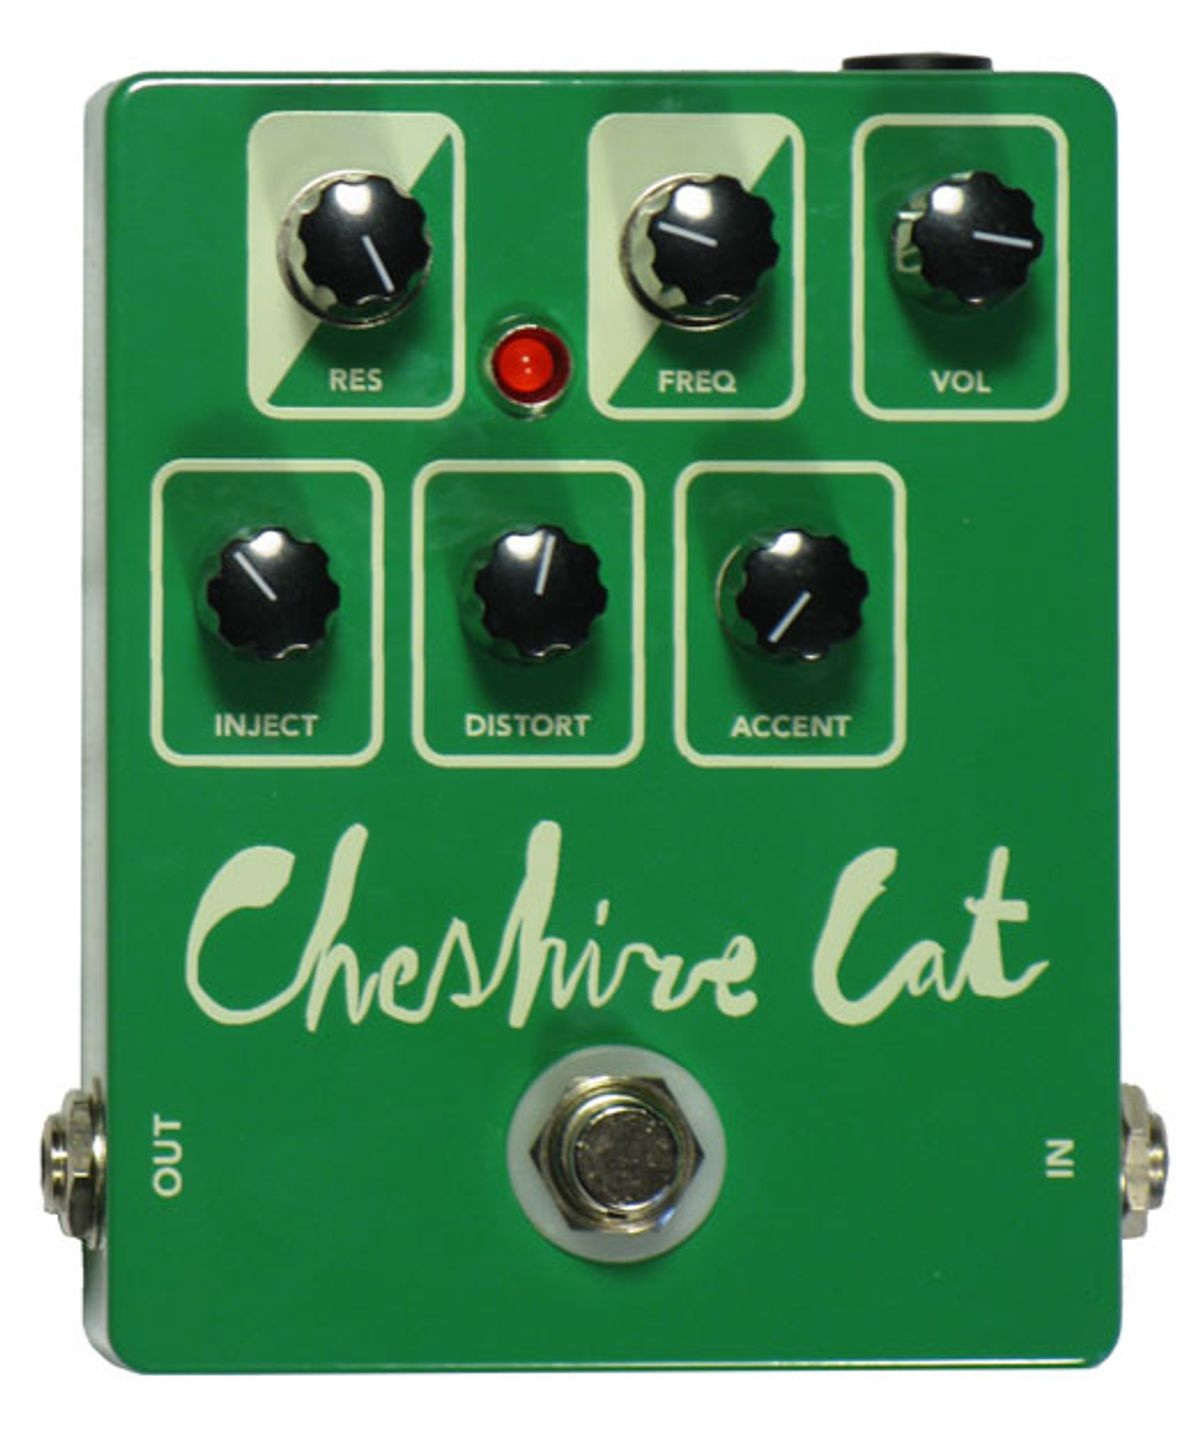 Amzel Electronics Releases the Cheshire Cat